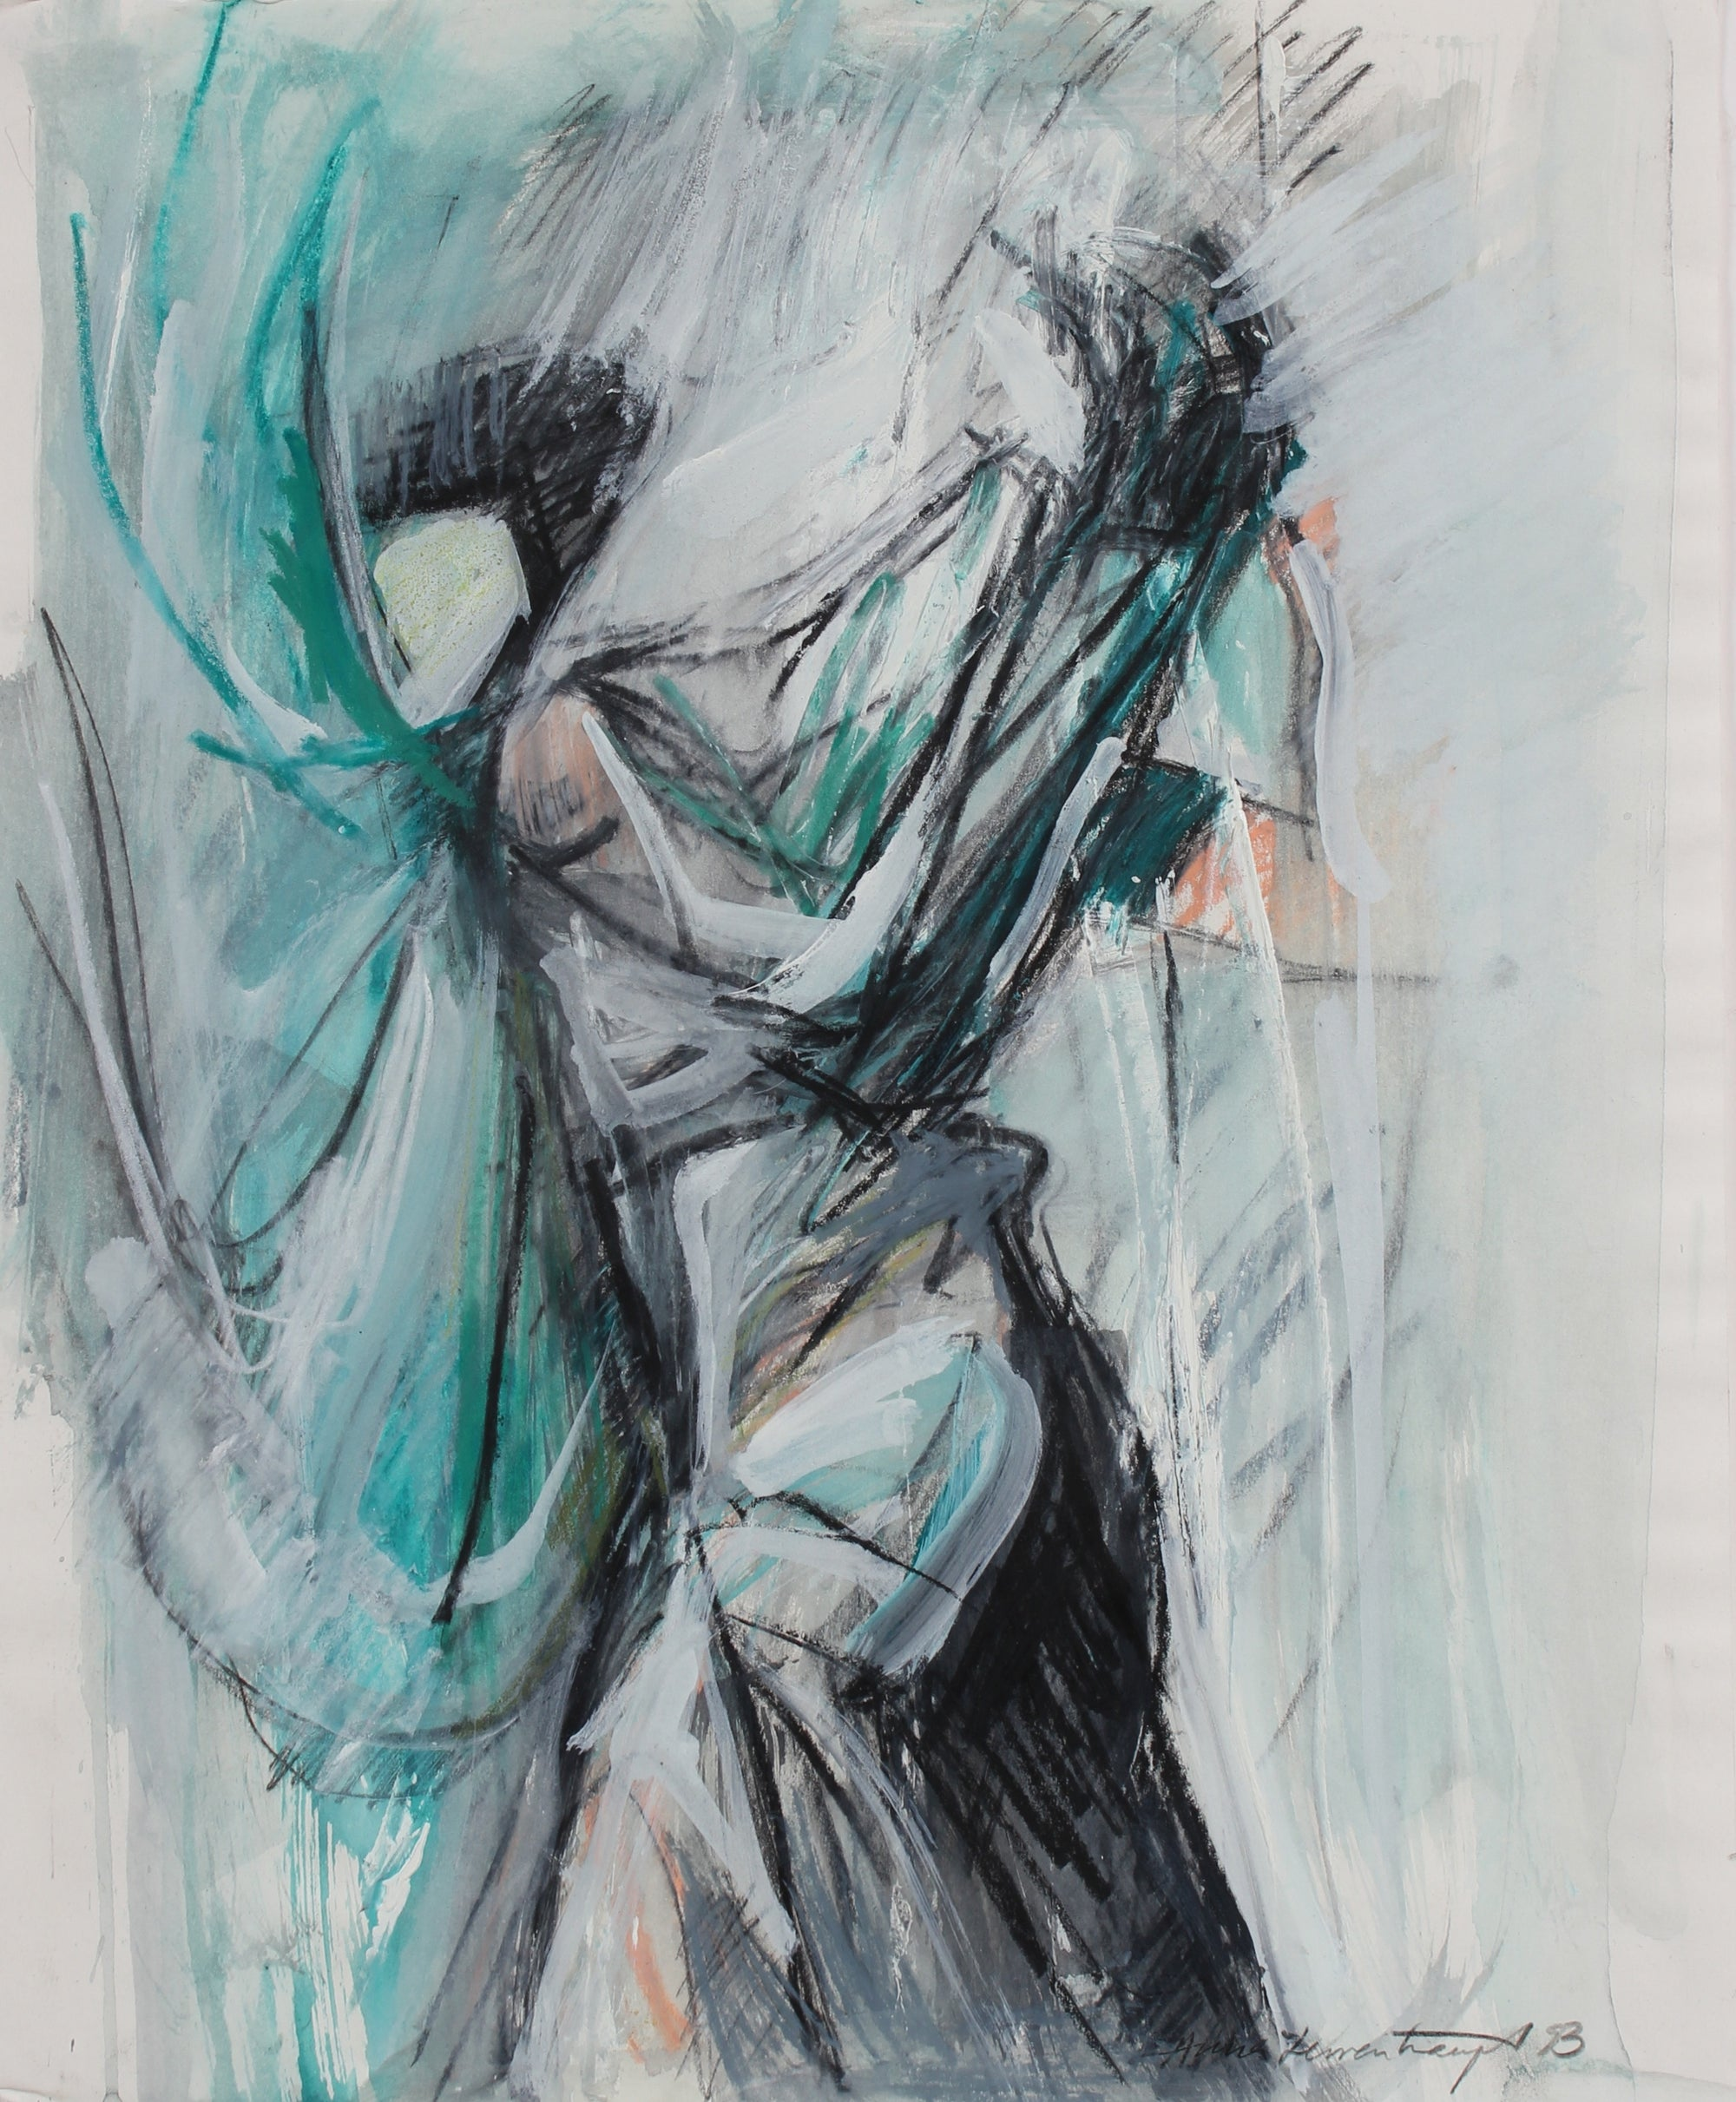 Abstract Cool Drawing <br>1993 Gouache, Pastel, Charcoal, and Graphite <br><br>99154